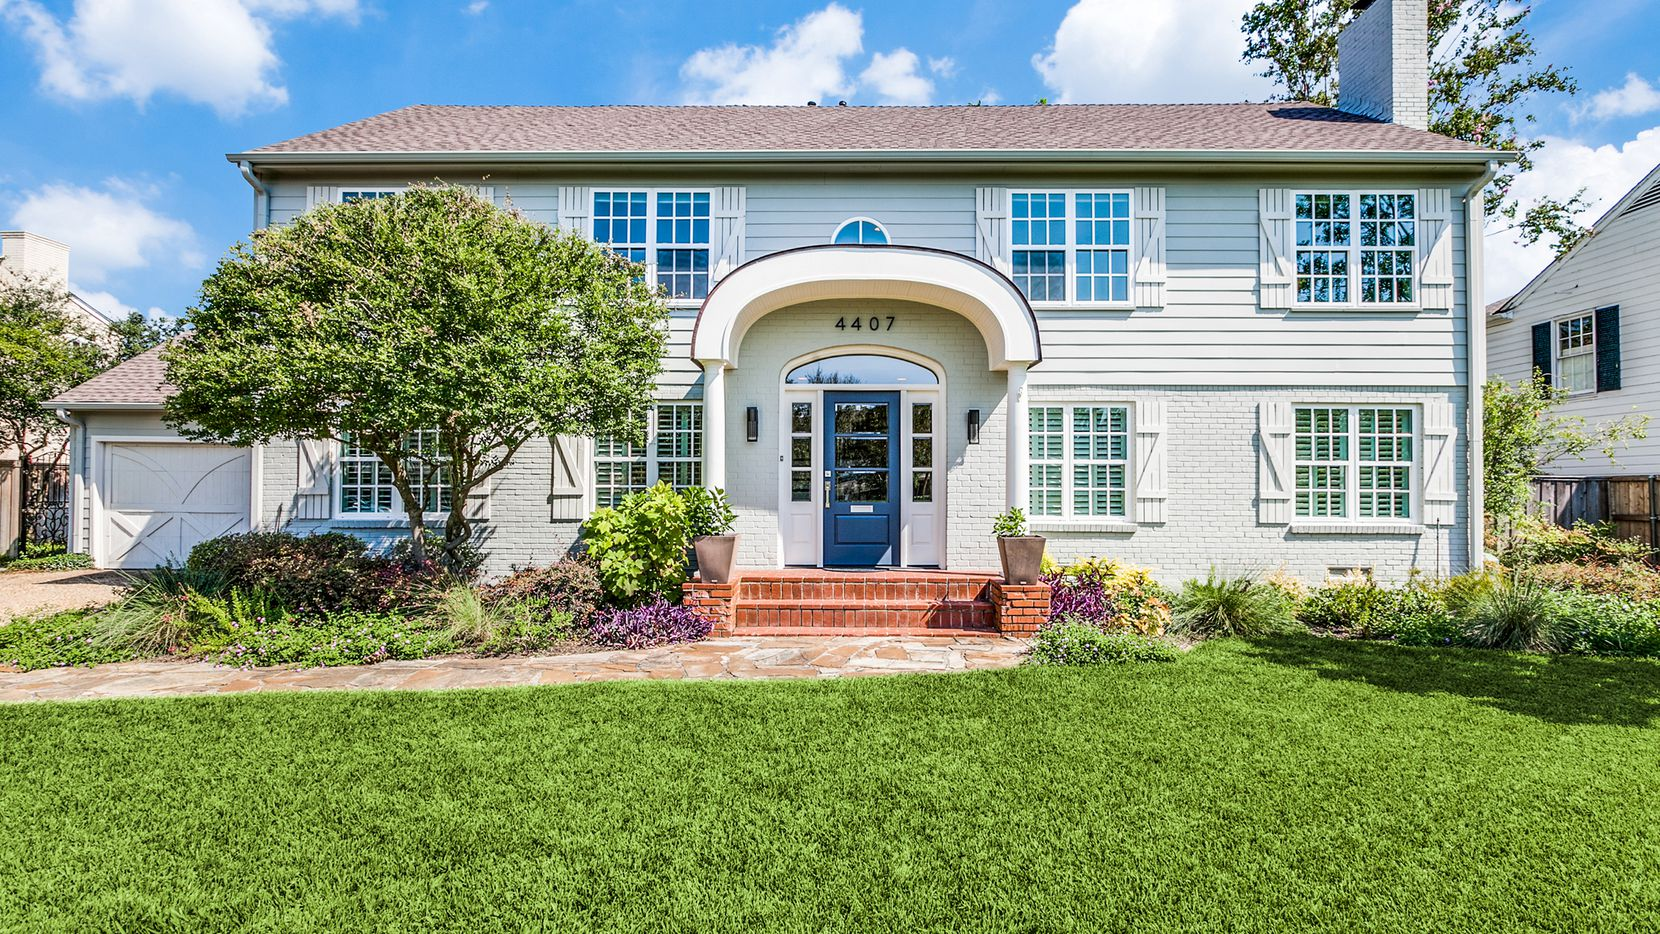 The remodeled four-bedroom home at 4407 Shirley Drive in Preston Hollow features a remodeled kitchen, pool and primary suite.